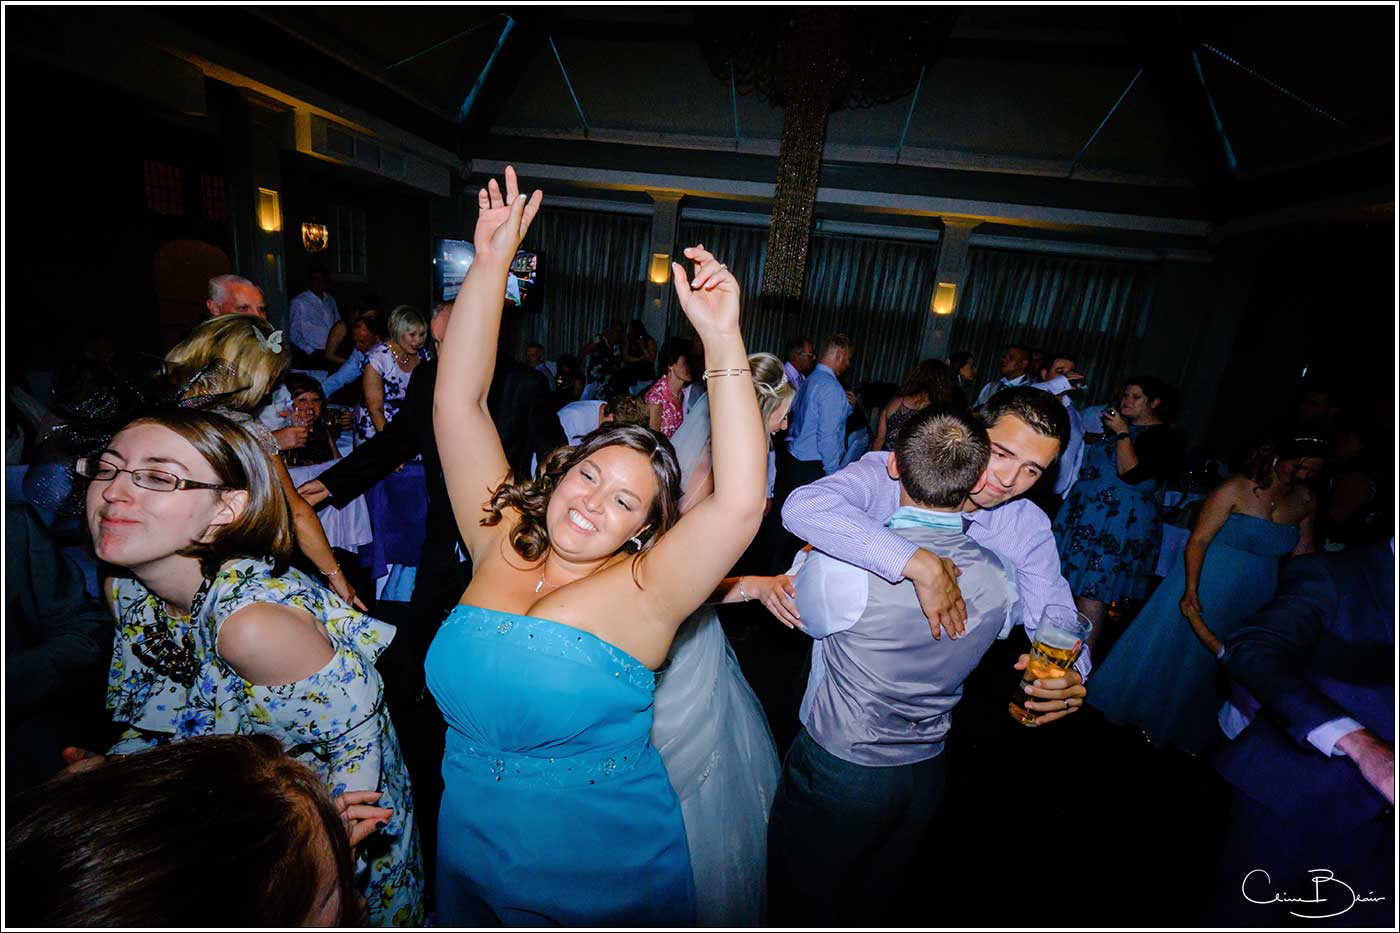 Woman dancing during eveing reception-by Hampton manor wedding photographer Clive Blair Photography